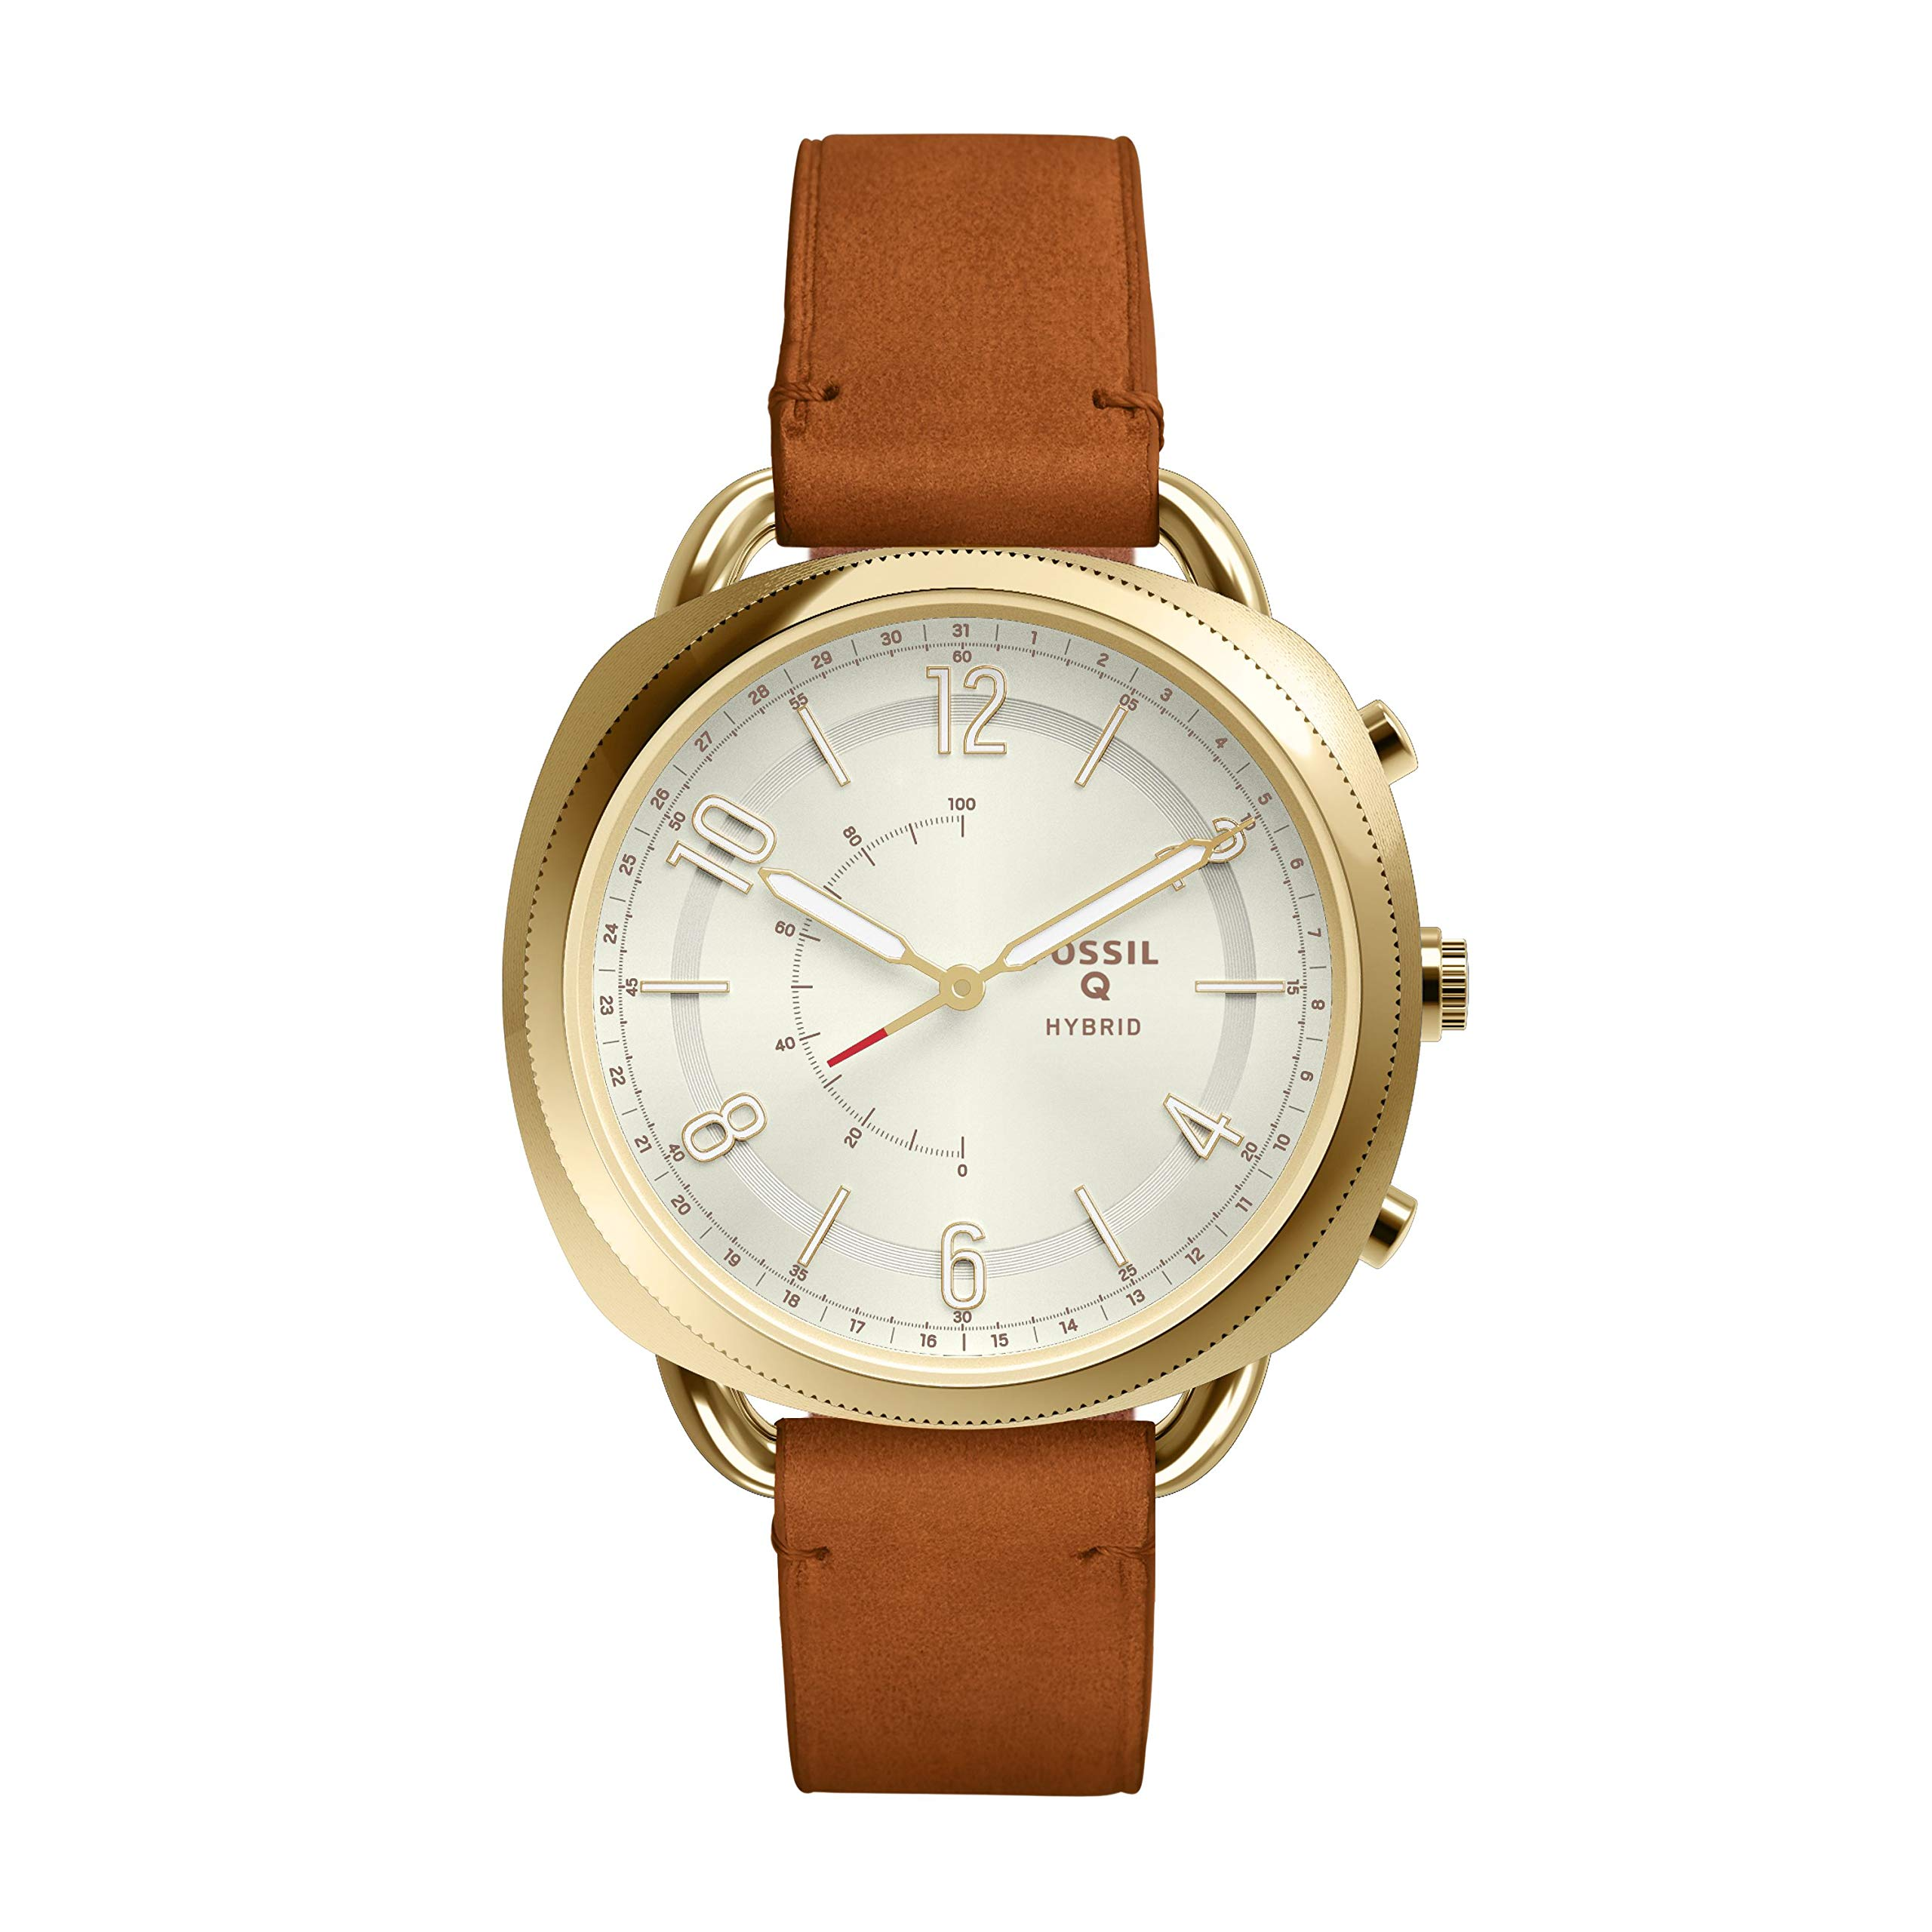 Fossil Women's Accomplice Stainless Steel and Leather Hybrid Smartwatch Color: Gold Tan (Model: FTW1201)